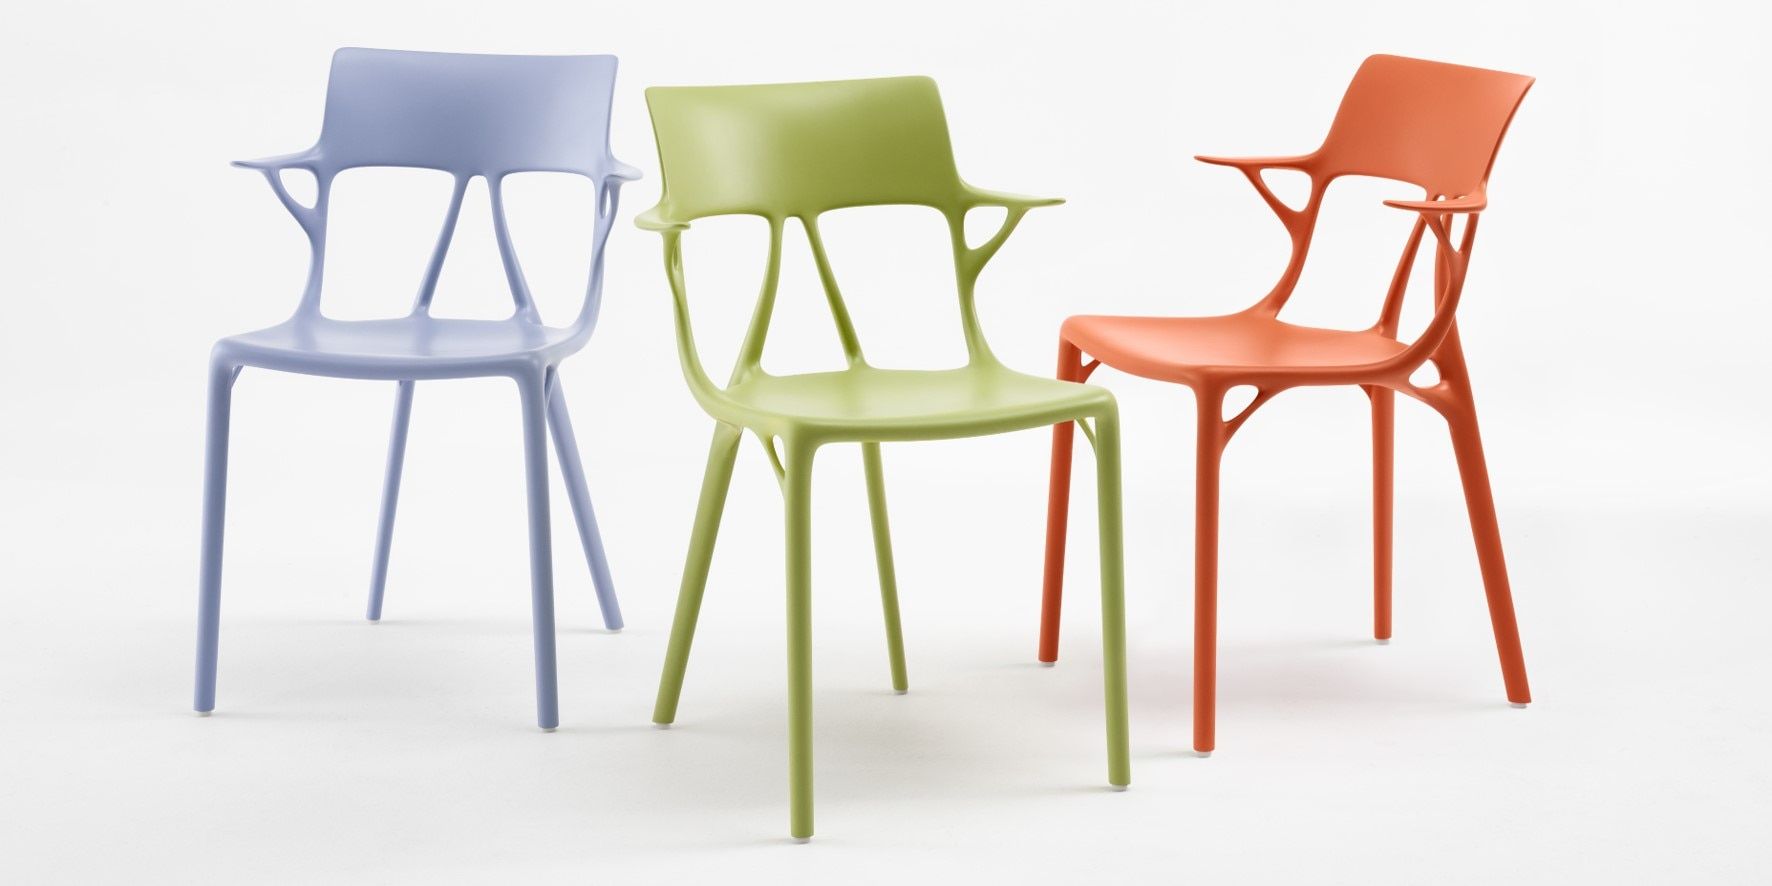 Philippe Starck leveraged generative design technology to design a new chair | Autodesk